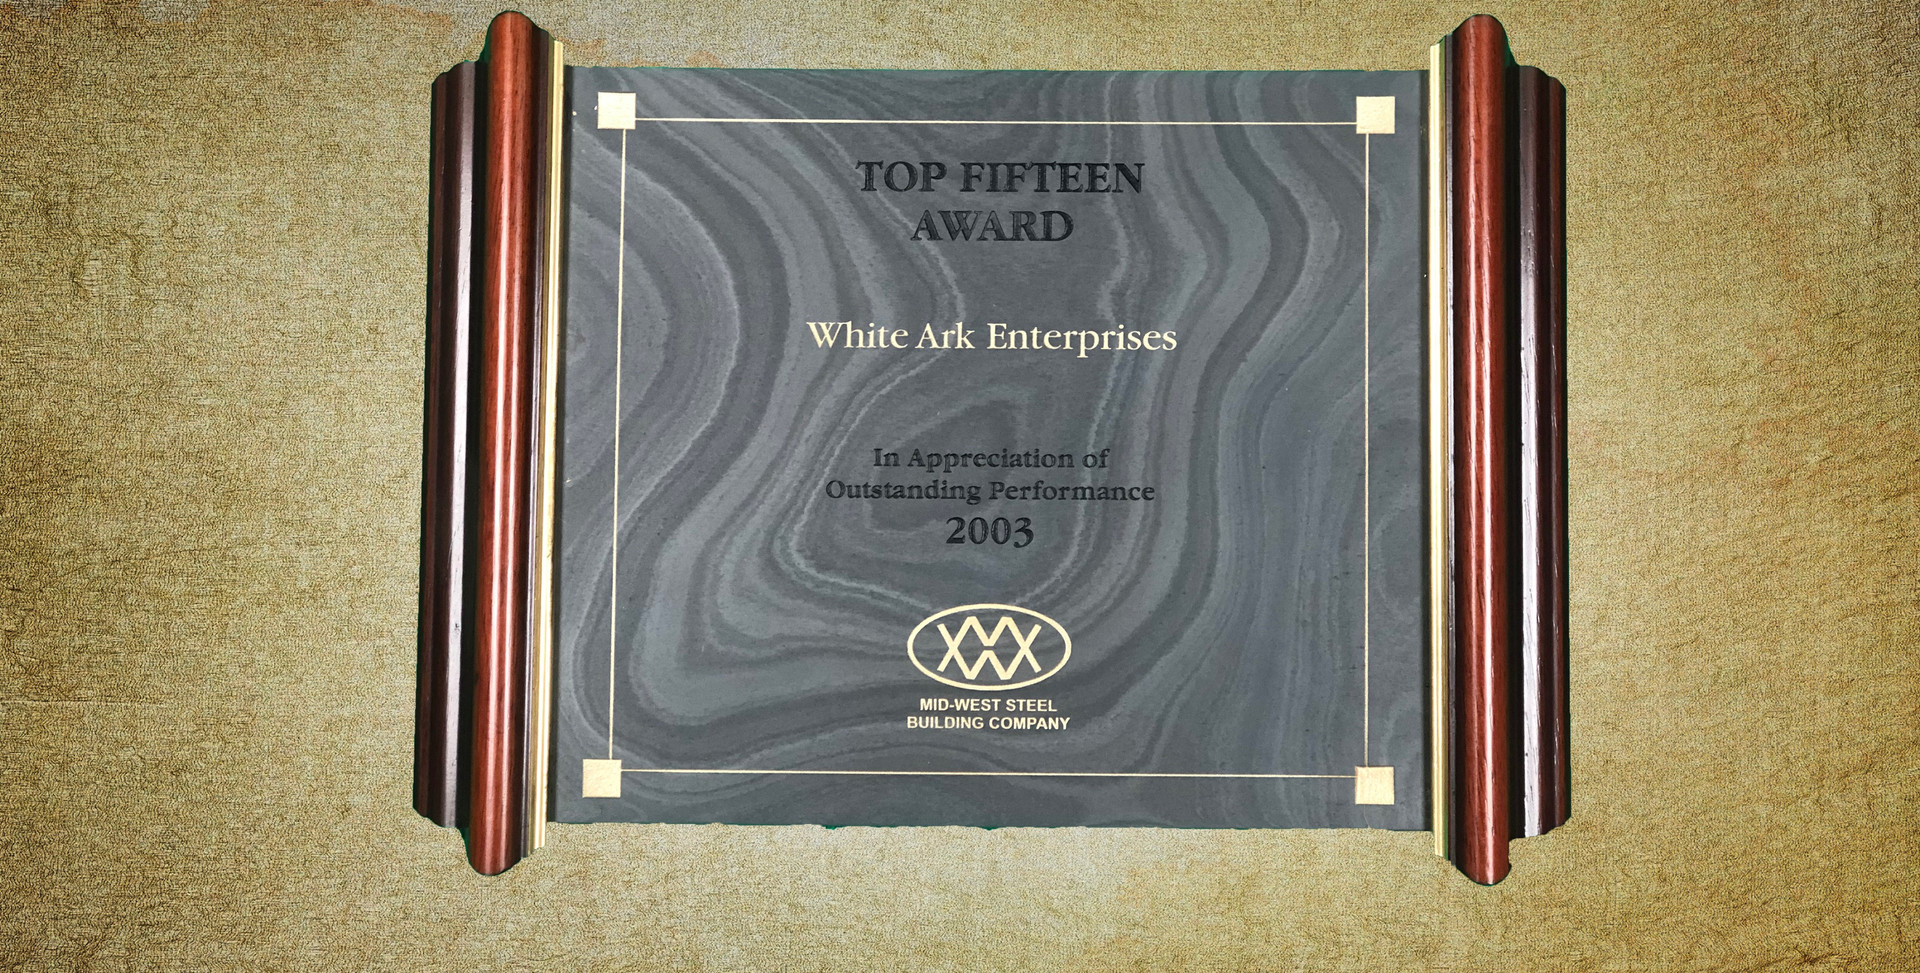 Top Fifteen Award 2003